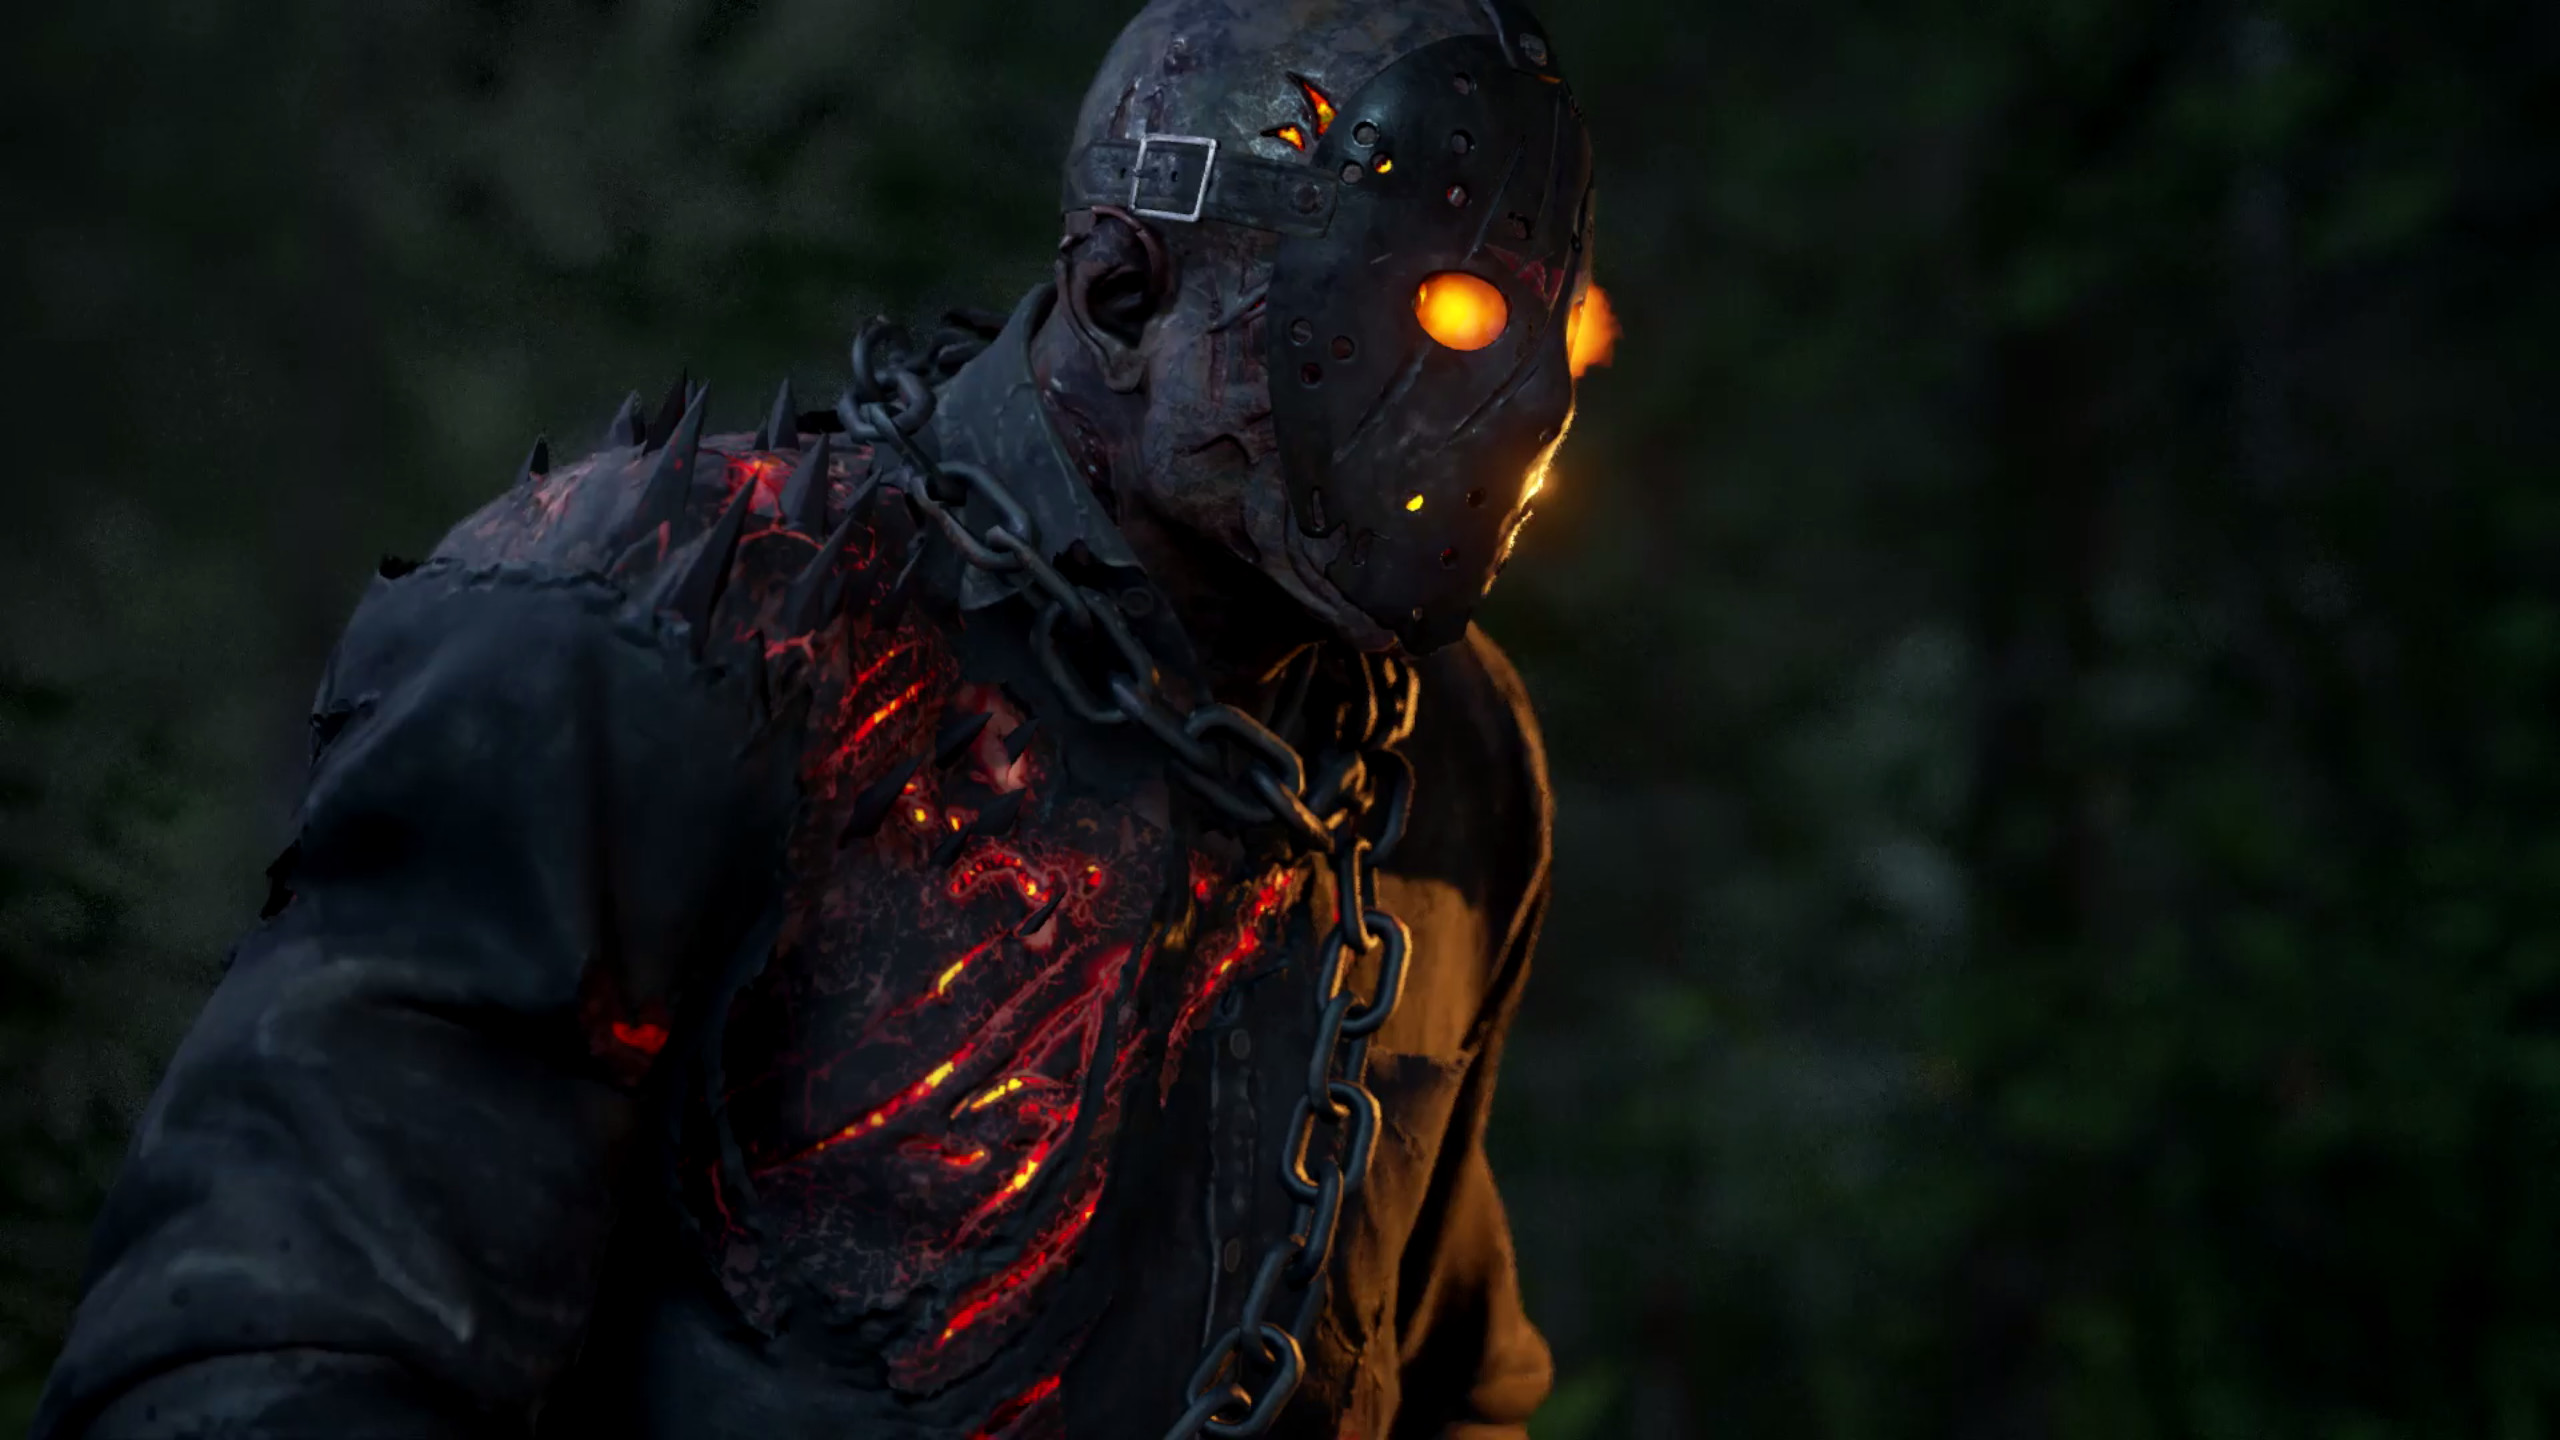 2560x1440 Friday the 13th: The Game HD Wallpapers